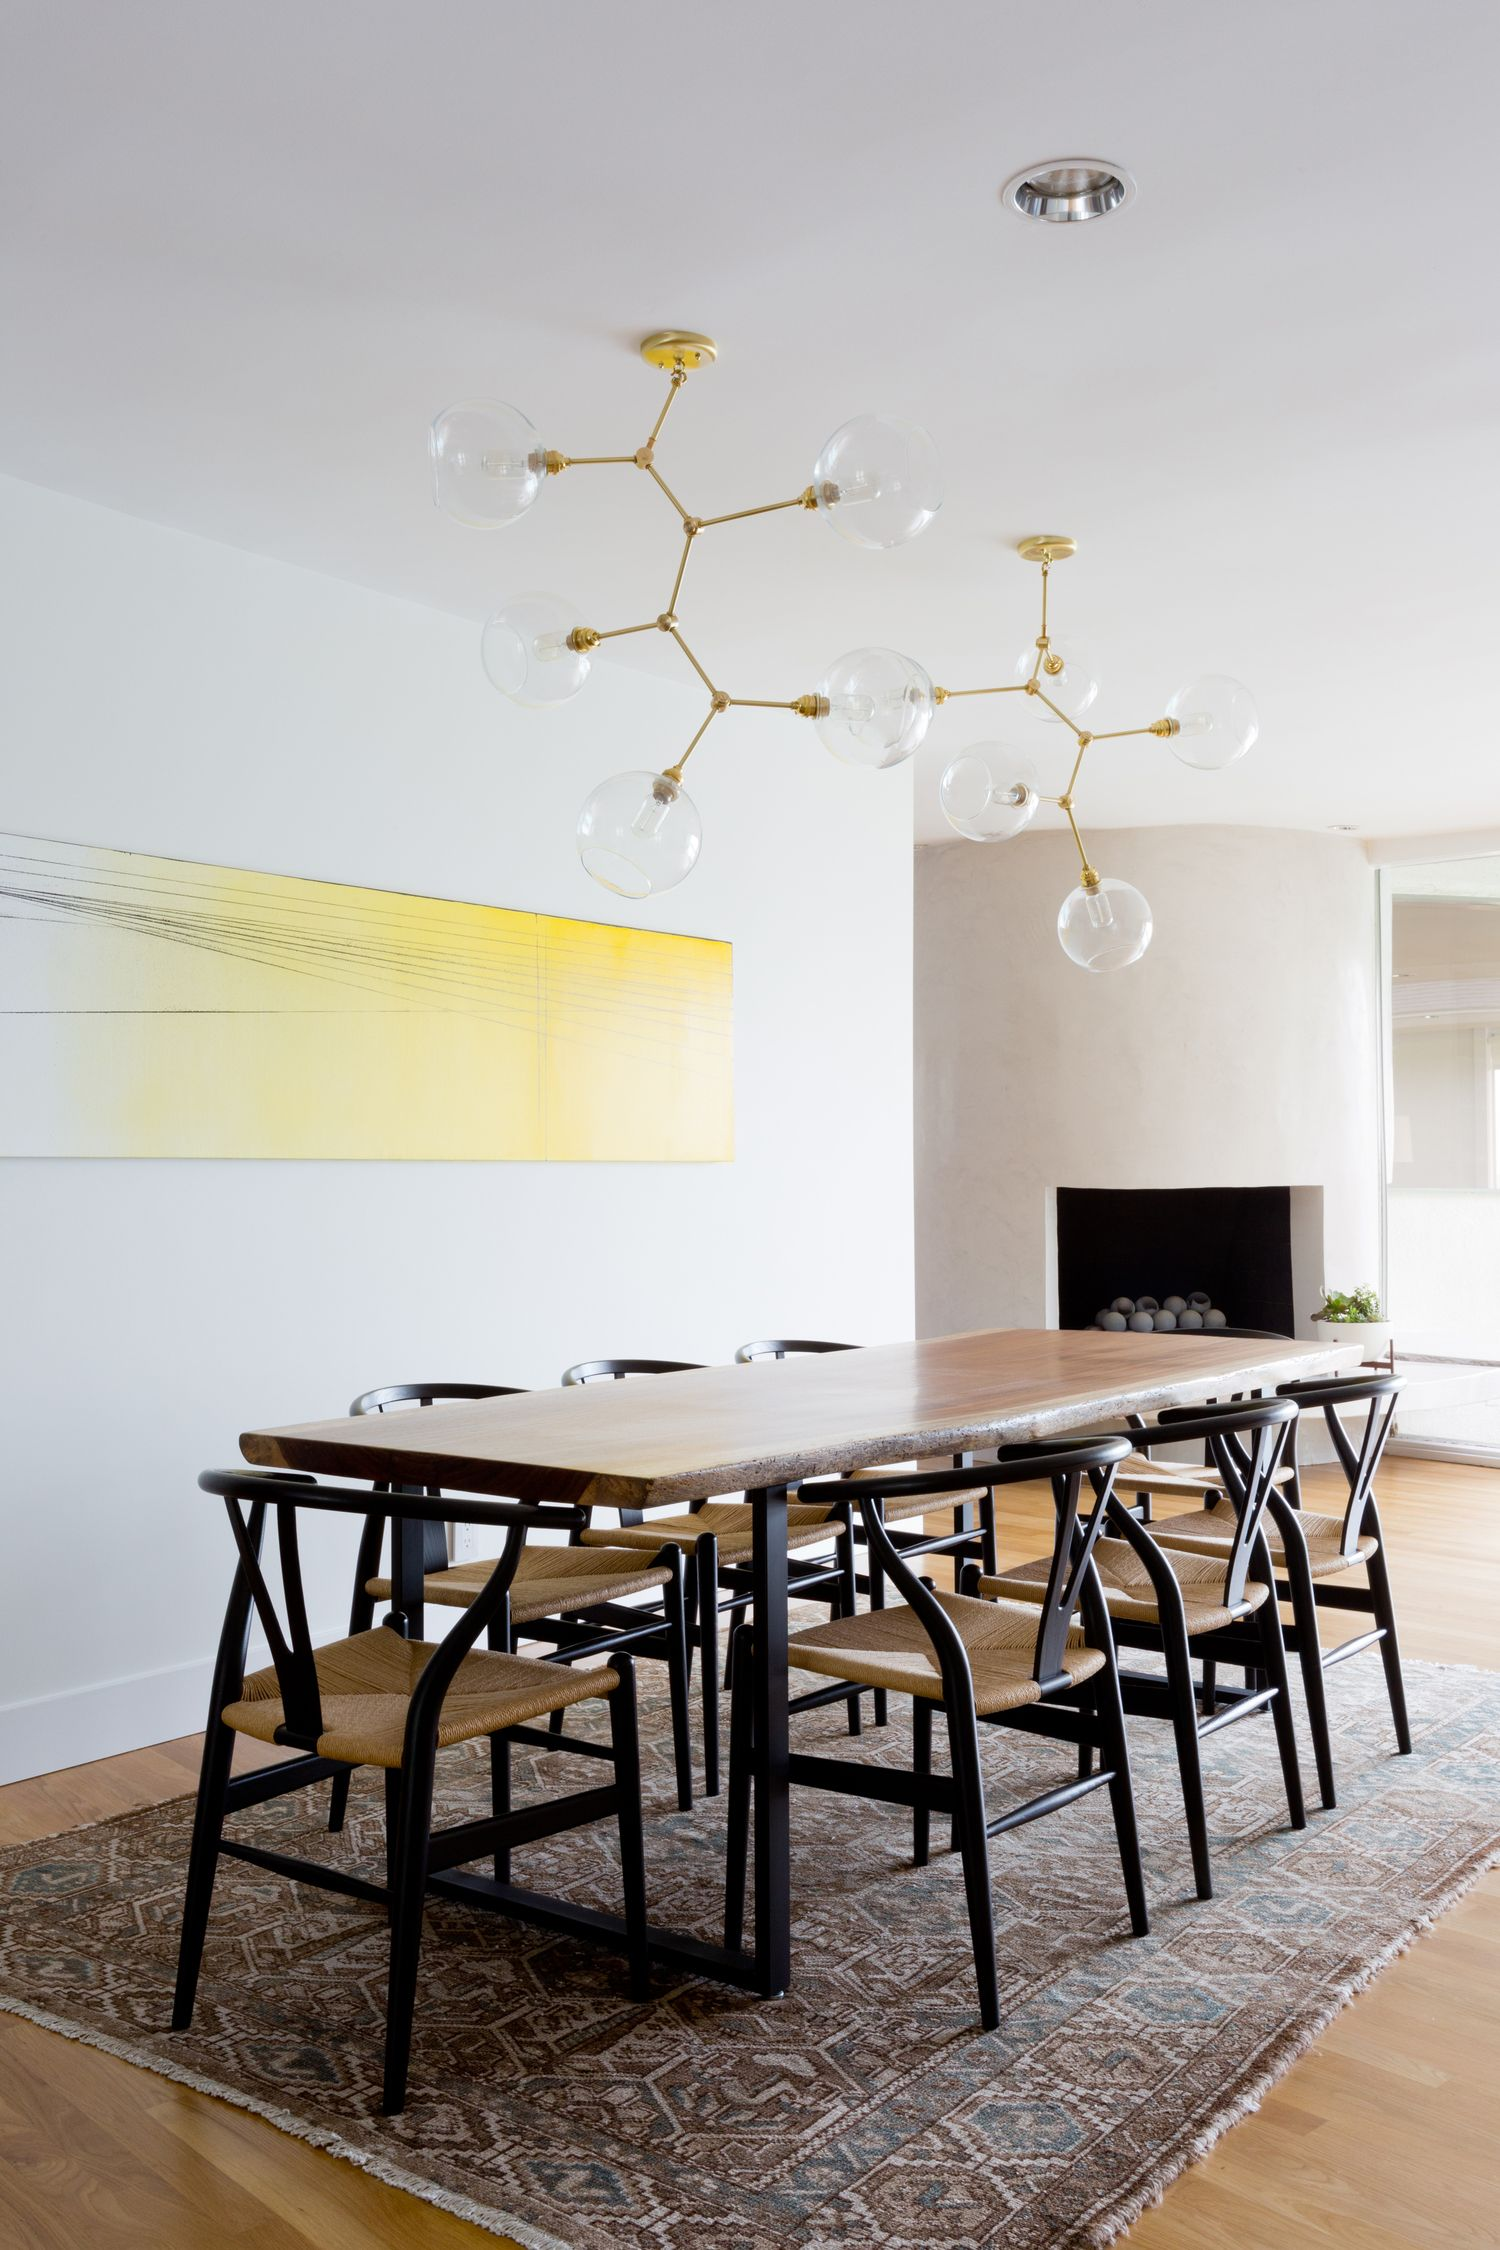 Earthy Modern Dining Room With Gold Light Fixture, Black Wishbone Chairs,  Live Edge Dining